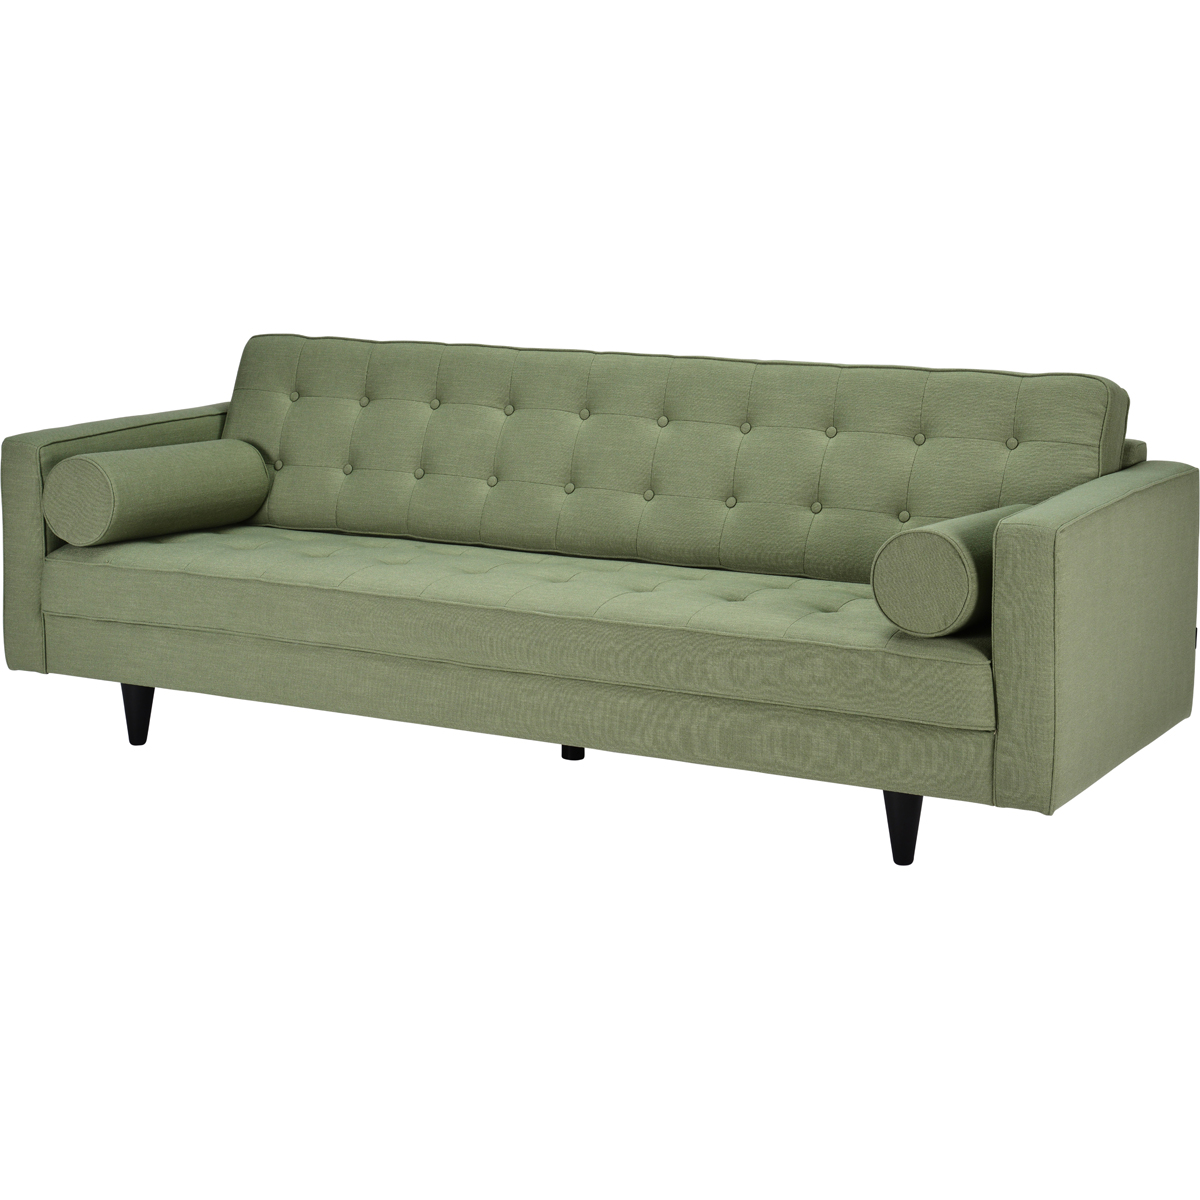 Stoffen Design Bank.Bank Livio Cozy Couch Sofa Furniture